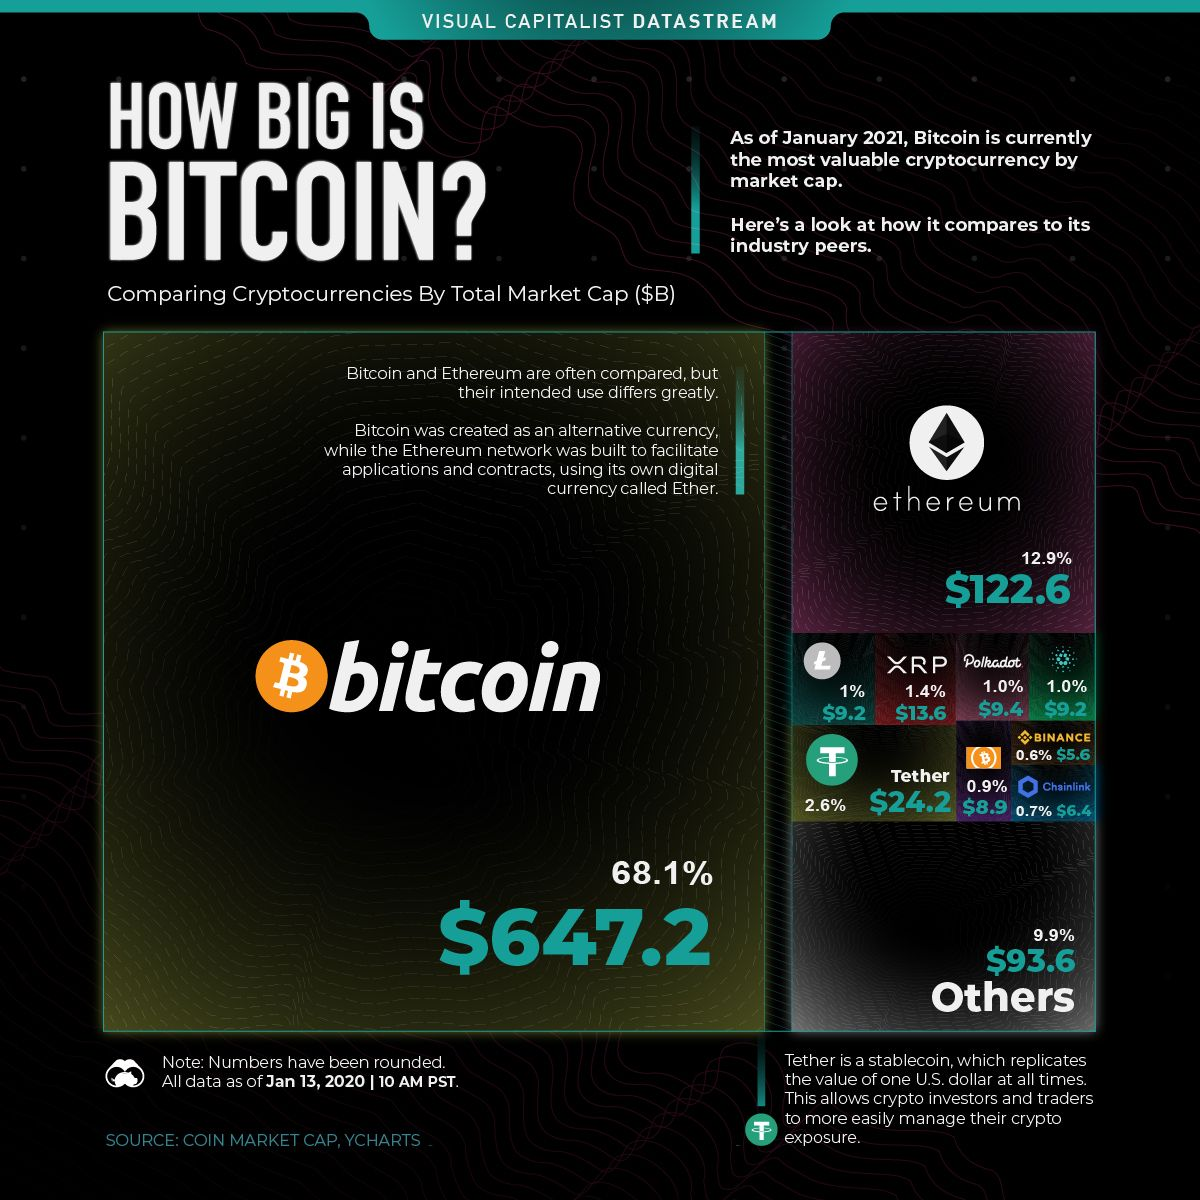 Comparing Bitcoins Market Cap To Other Cryptocurrencies The Briefing In The Cryptocurrency World Bitcoin Has Consistently In 2021 Bitcoin Bitcoin Market Tesla Shares